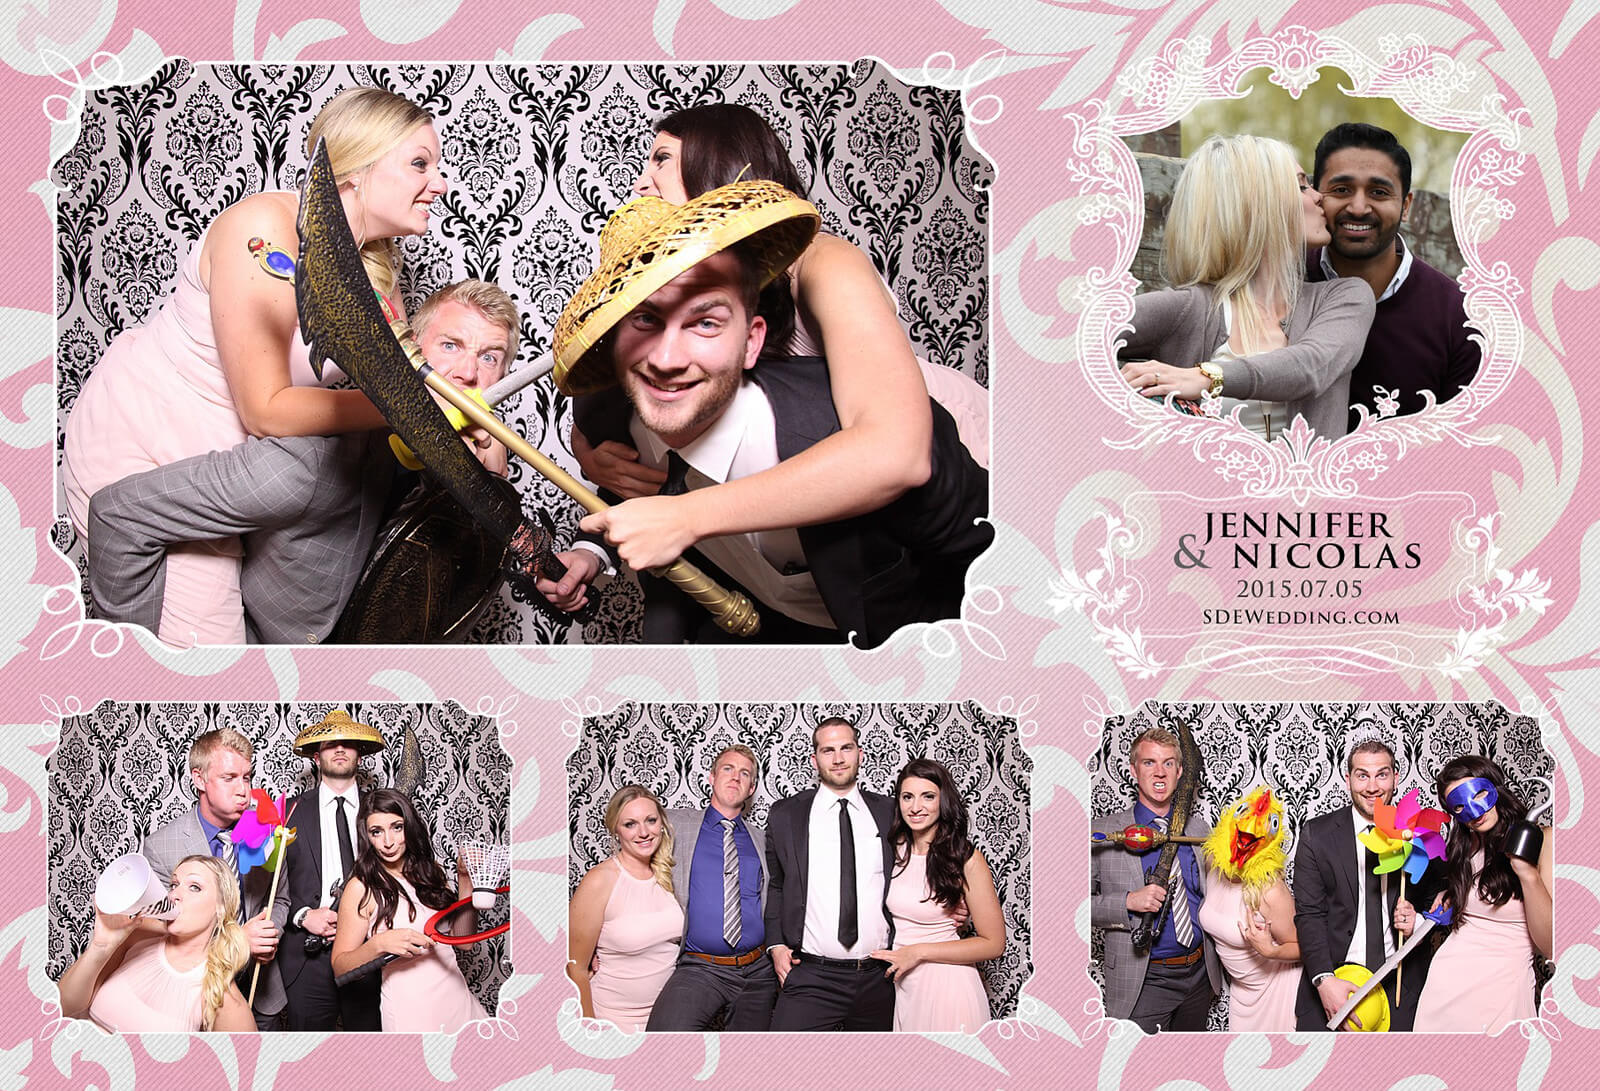 Toronto Liberty Grand Wedding Reception Photo Booth Rental 1